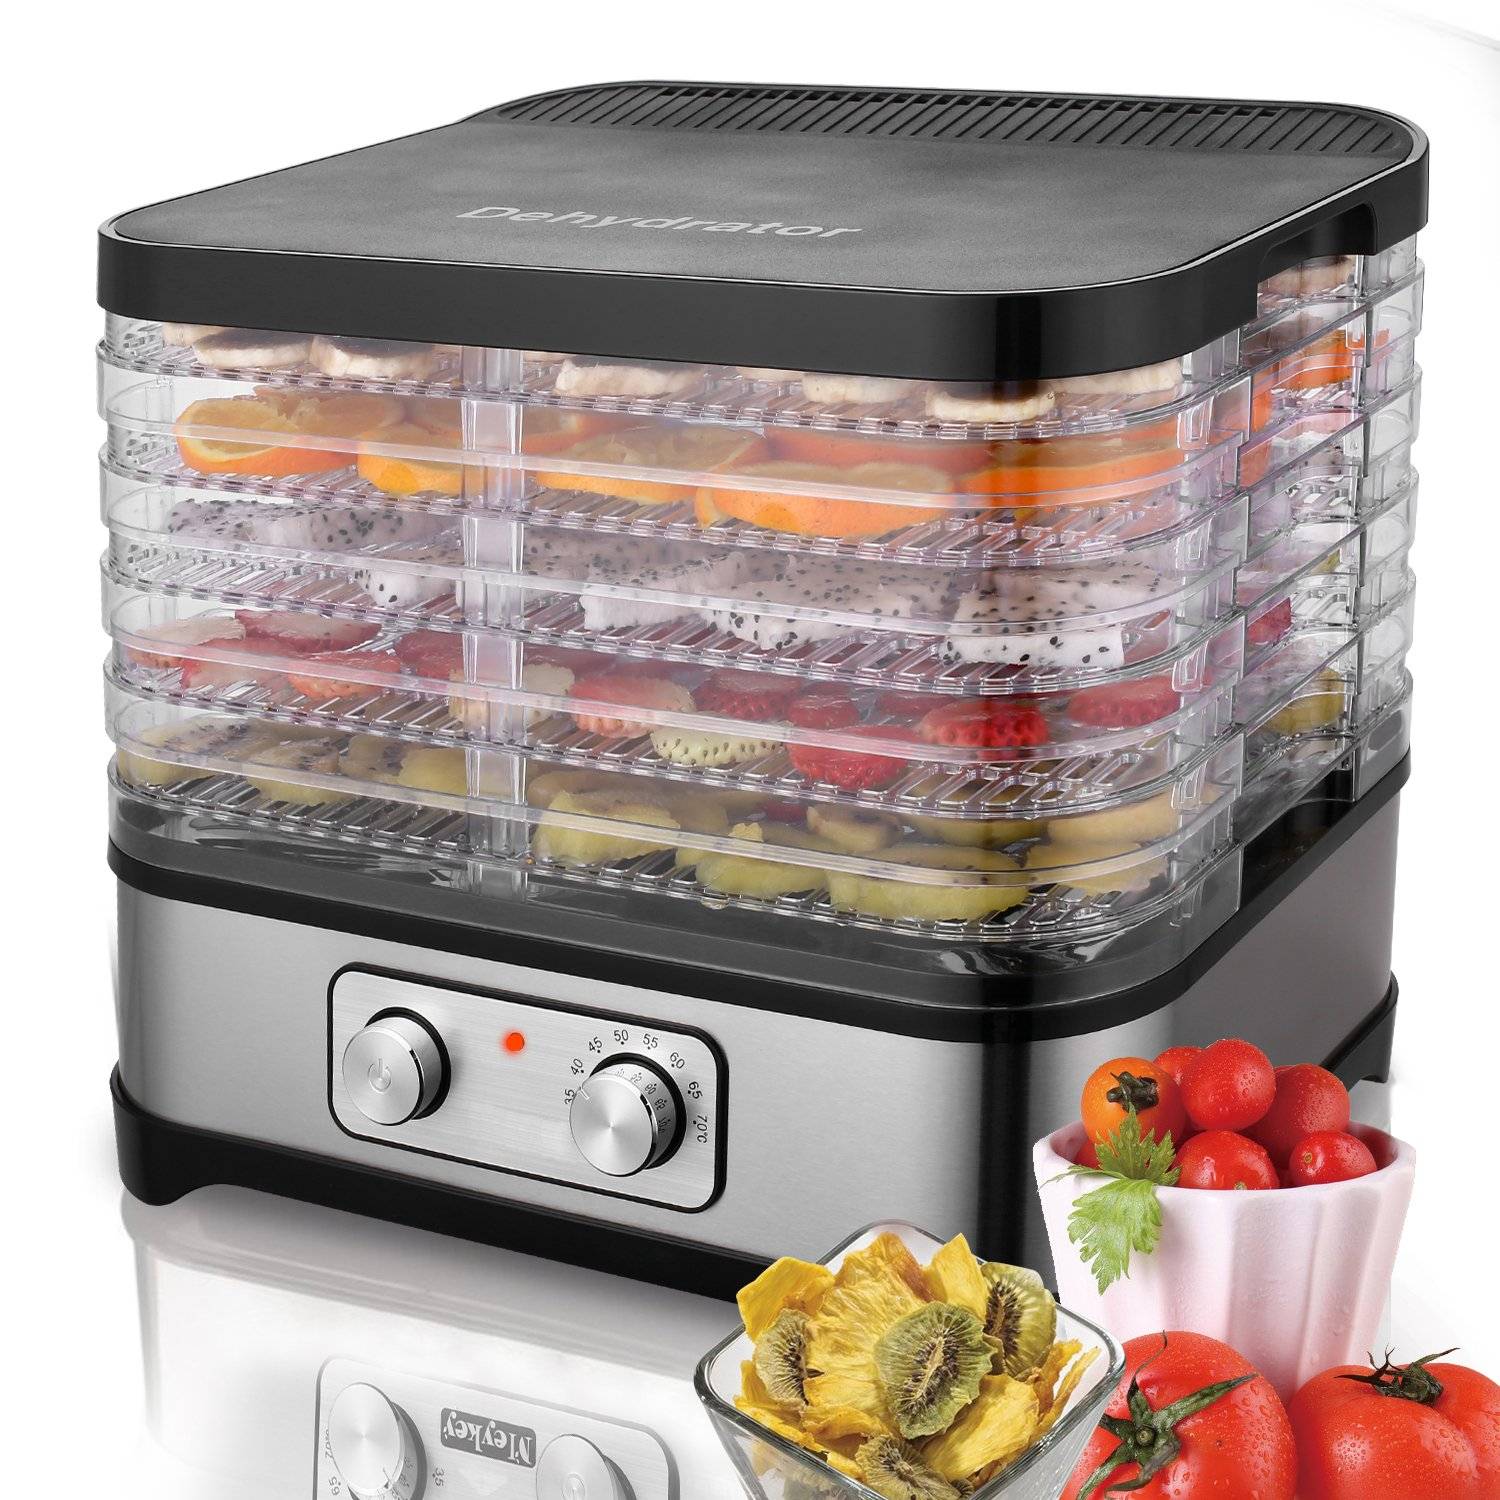 Anfan 250W Professional Food Dehydrator Machine, Best Electric Multi-Tier Home Food Meat Beef Jerky Fruit Vegetable Dehydrator Dryer with 5 Stackable Trays